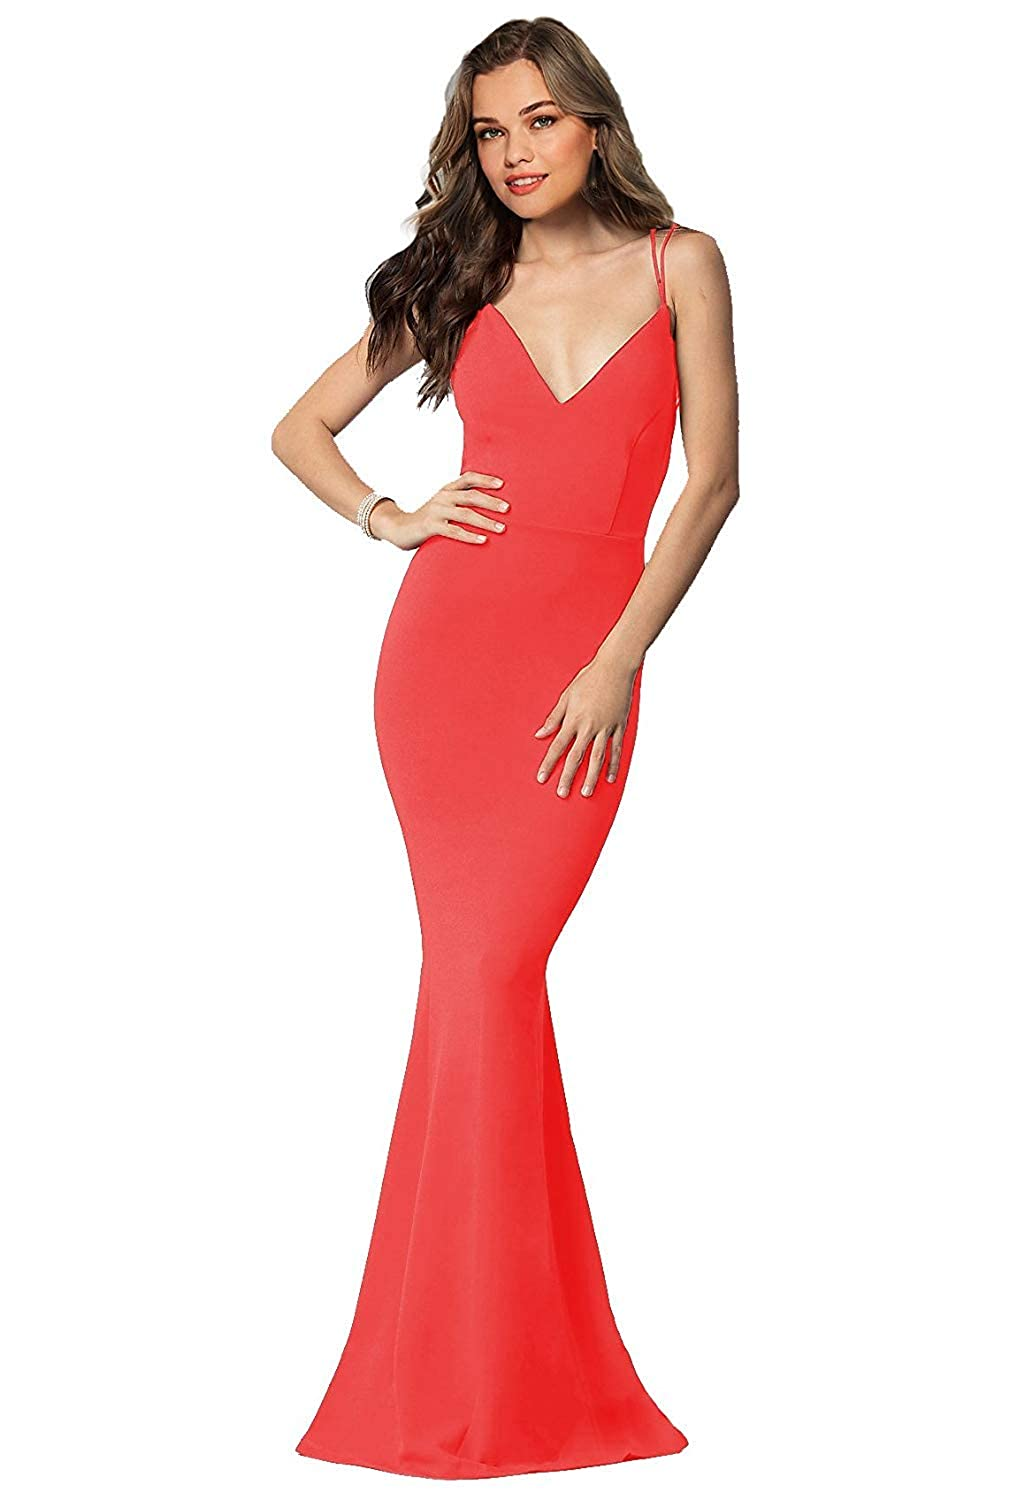 Coral Sulidi Women's Long Sexy Mermaid Prom Dresses Backless Evening Formal Party Ball Gowns